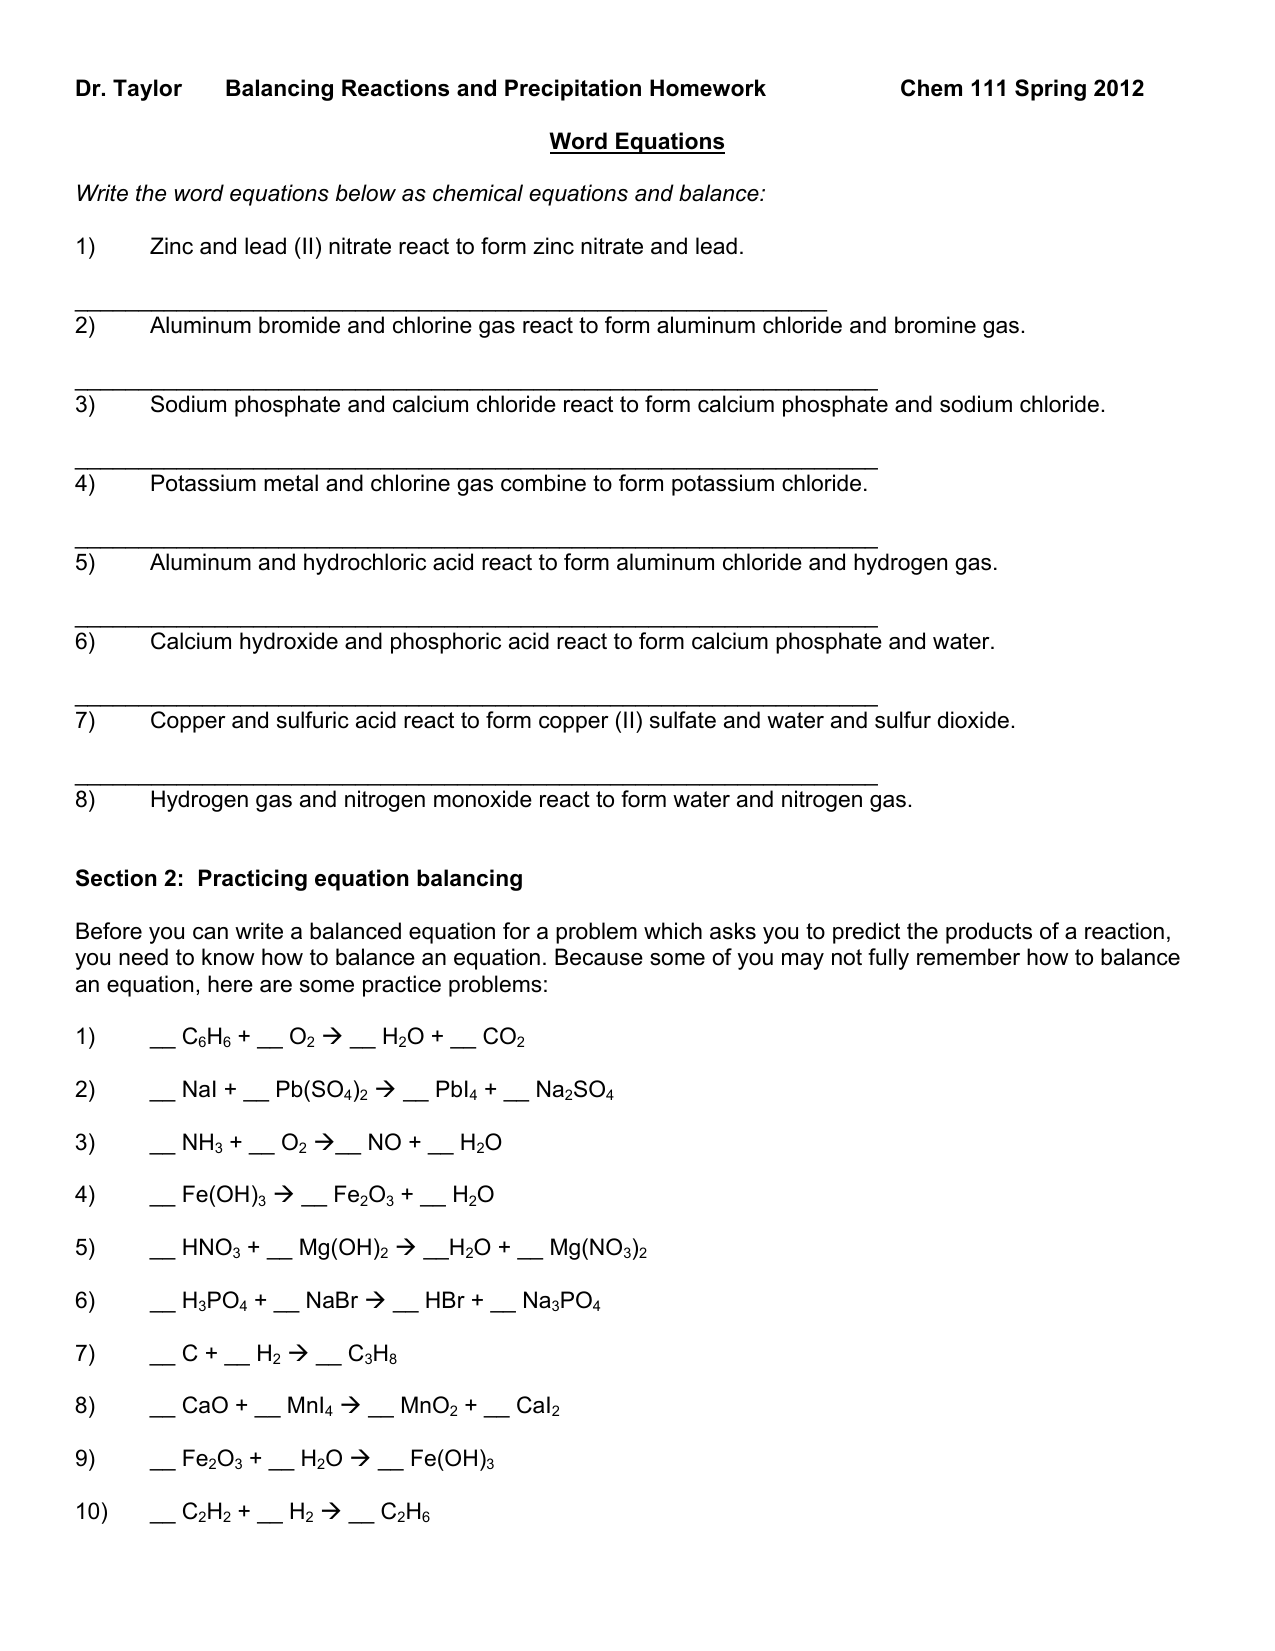 Balancing Equations Homework